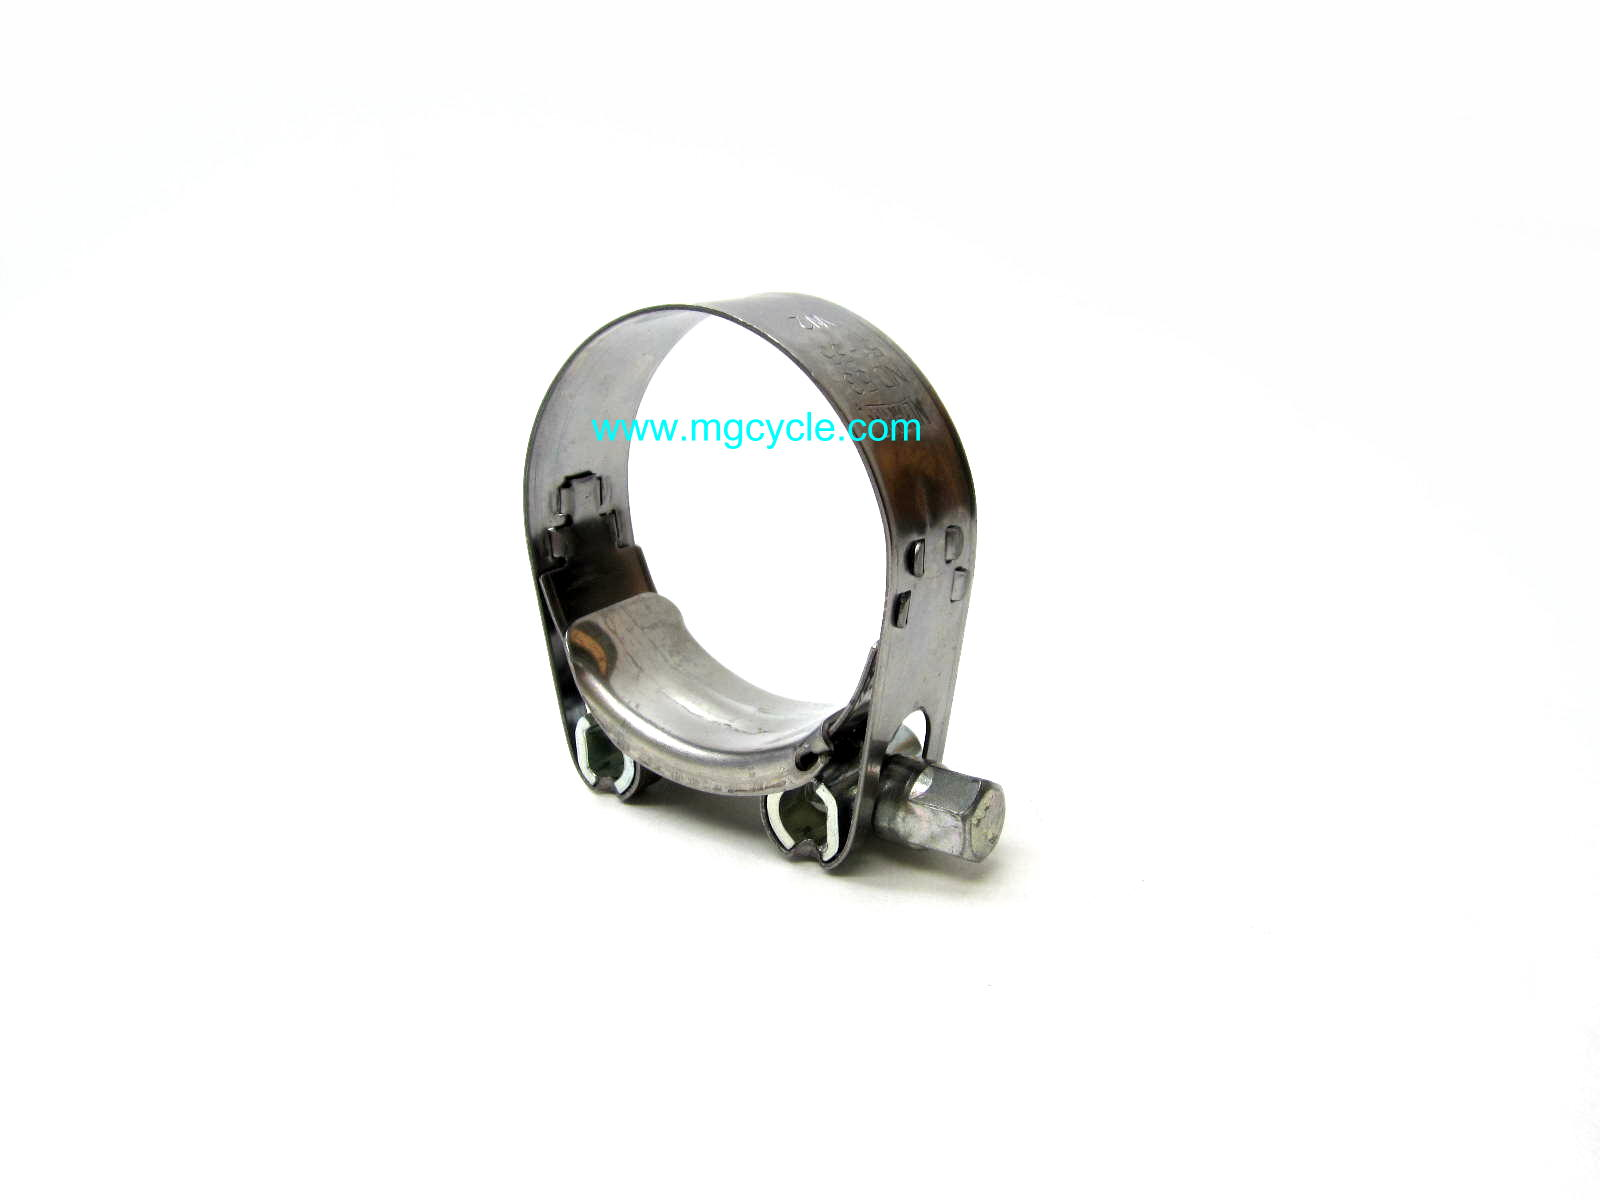 alternate 51-55mm muffler clamp GU01126930